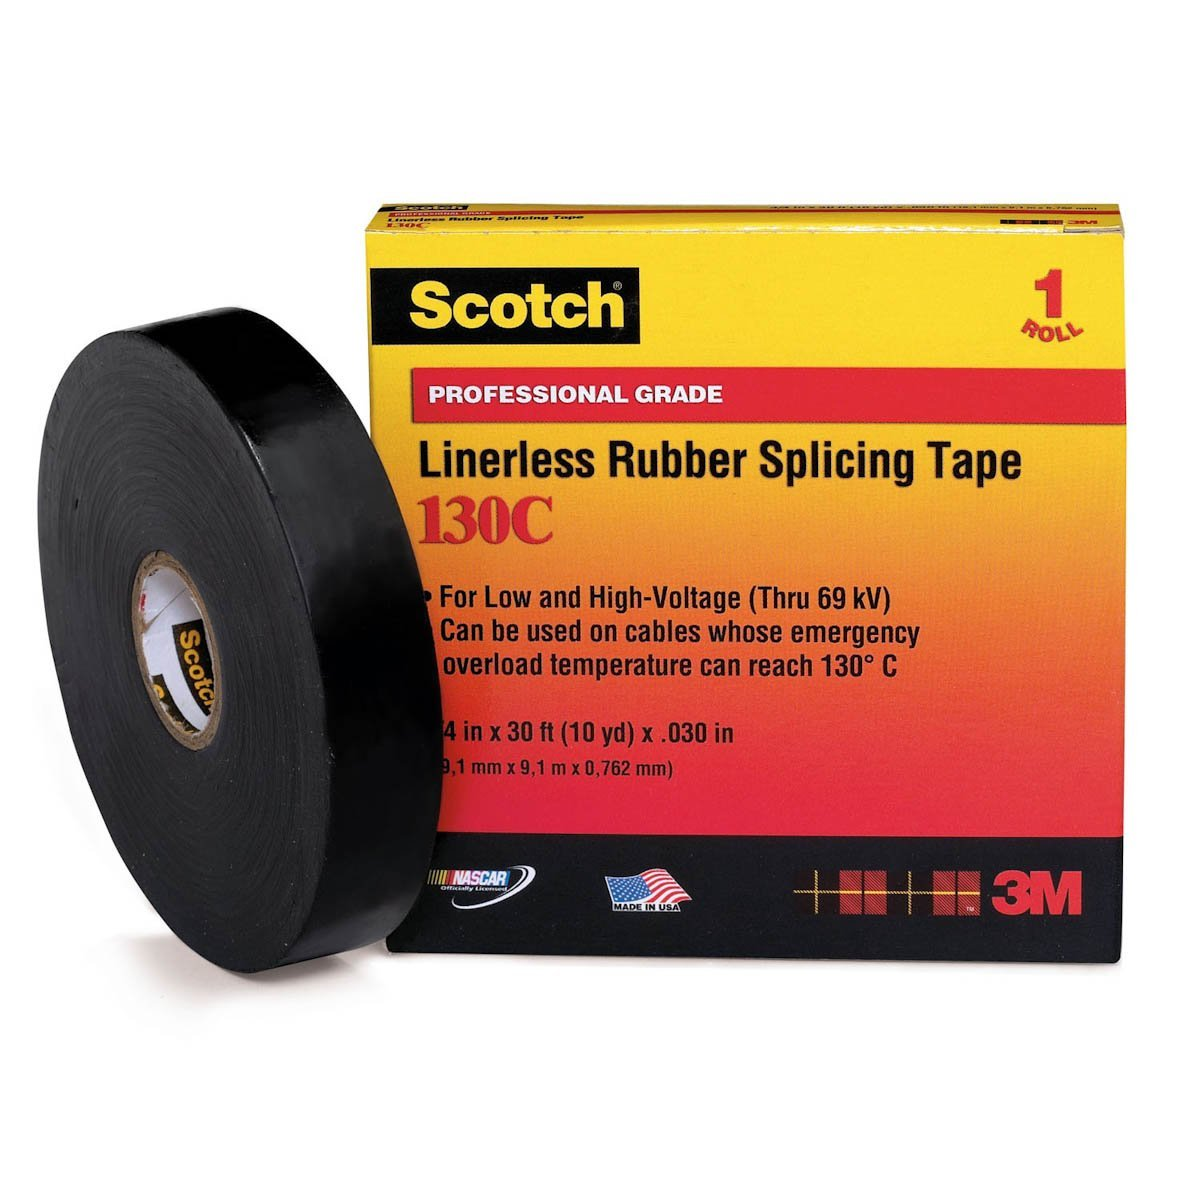 "3M 130C High-Voltage Rubber Splicing Electrical Tape, 3/4"" X 30' (1 per pack)"